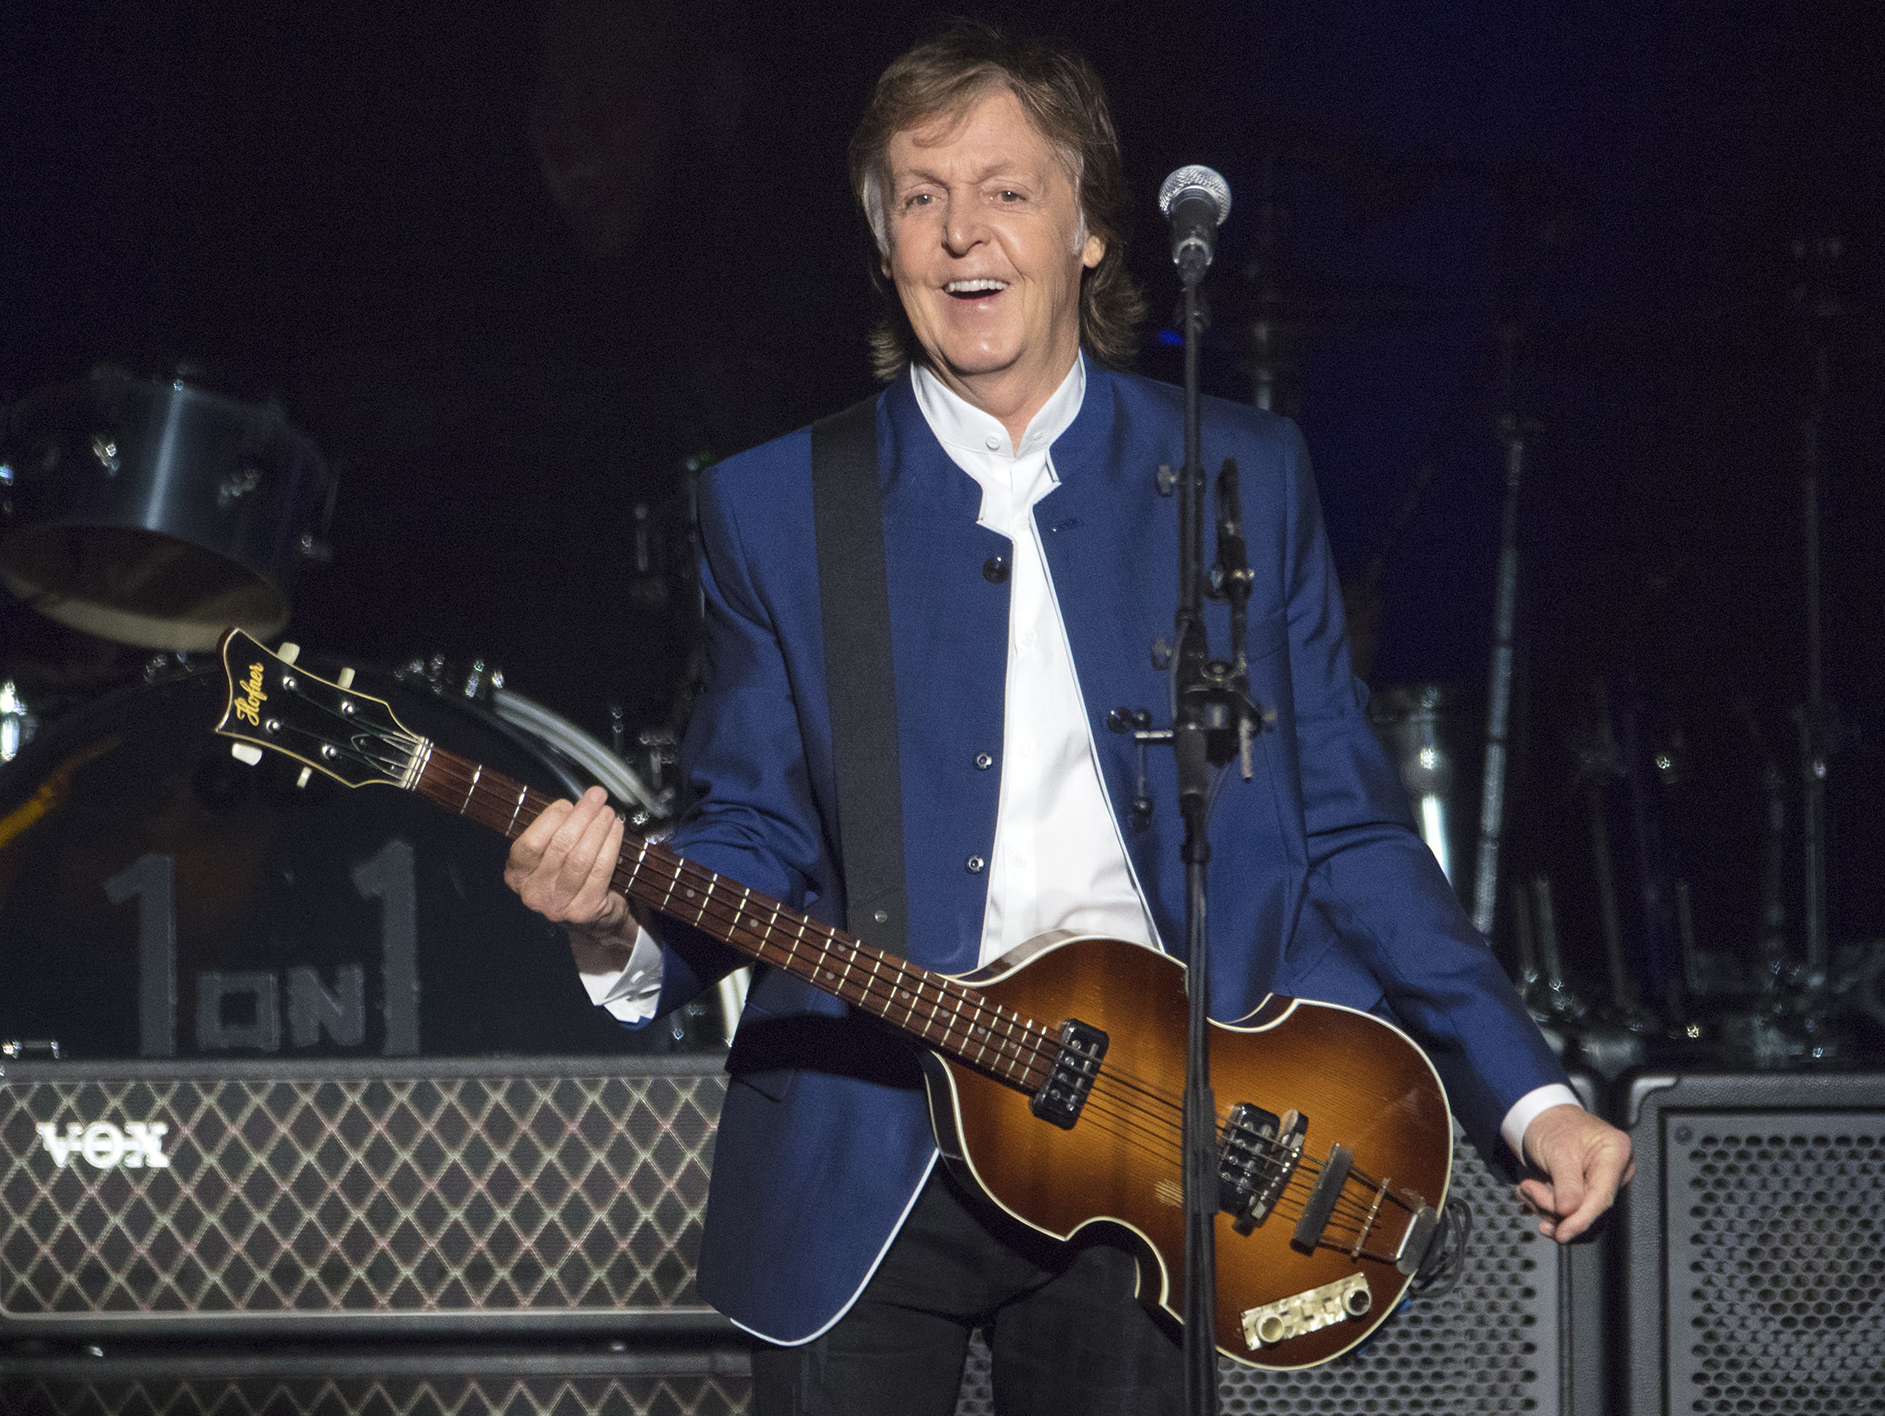 Paul McCartney Compares Beatles to Rolling Stones: 'They're a Blues Cover Band' - Rolling Stone